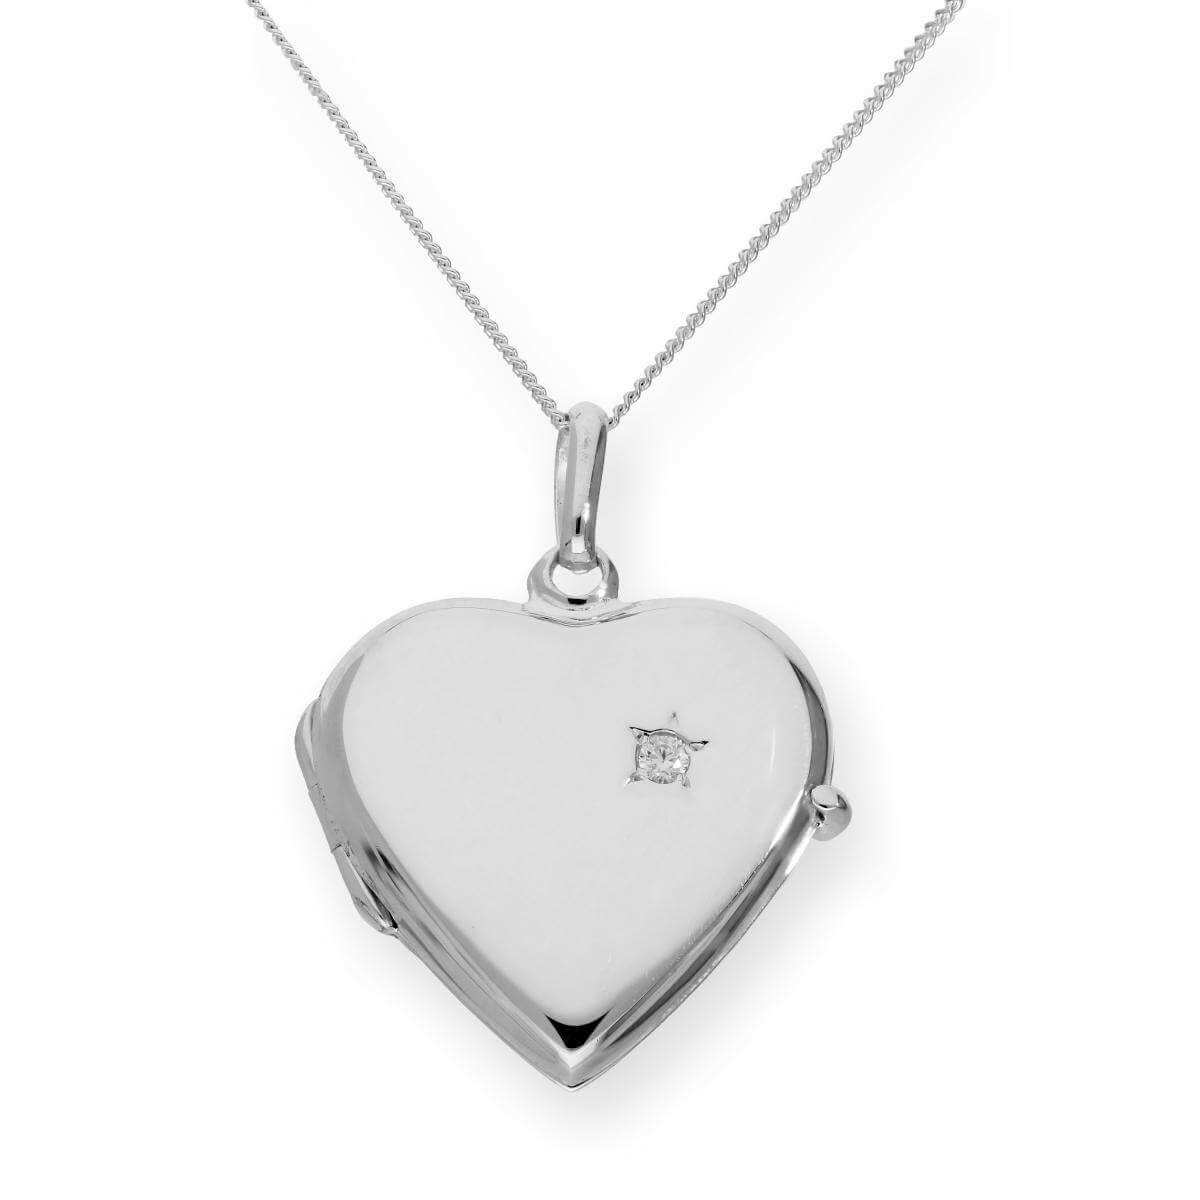 Sterling Silver & CZ Crystal Engravable Heart Locket on Chain 16 - 22 Inches